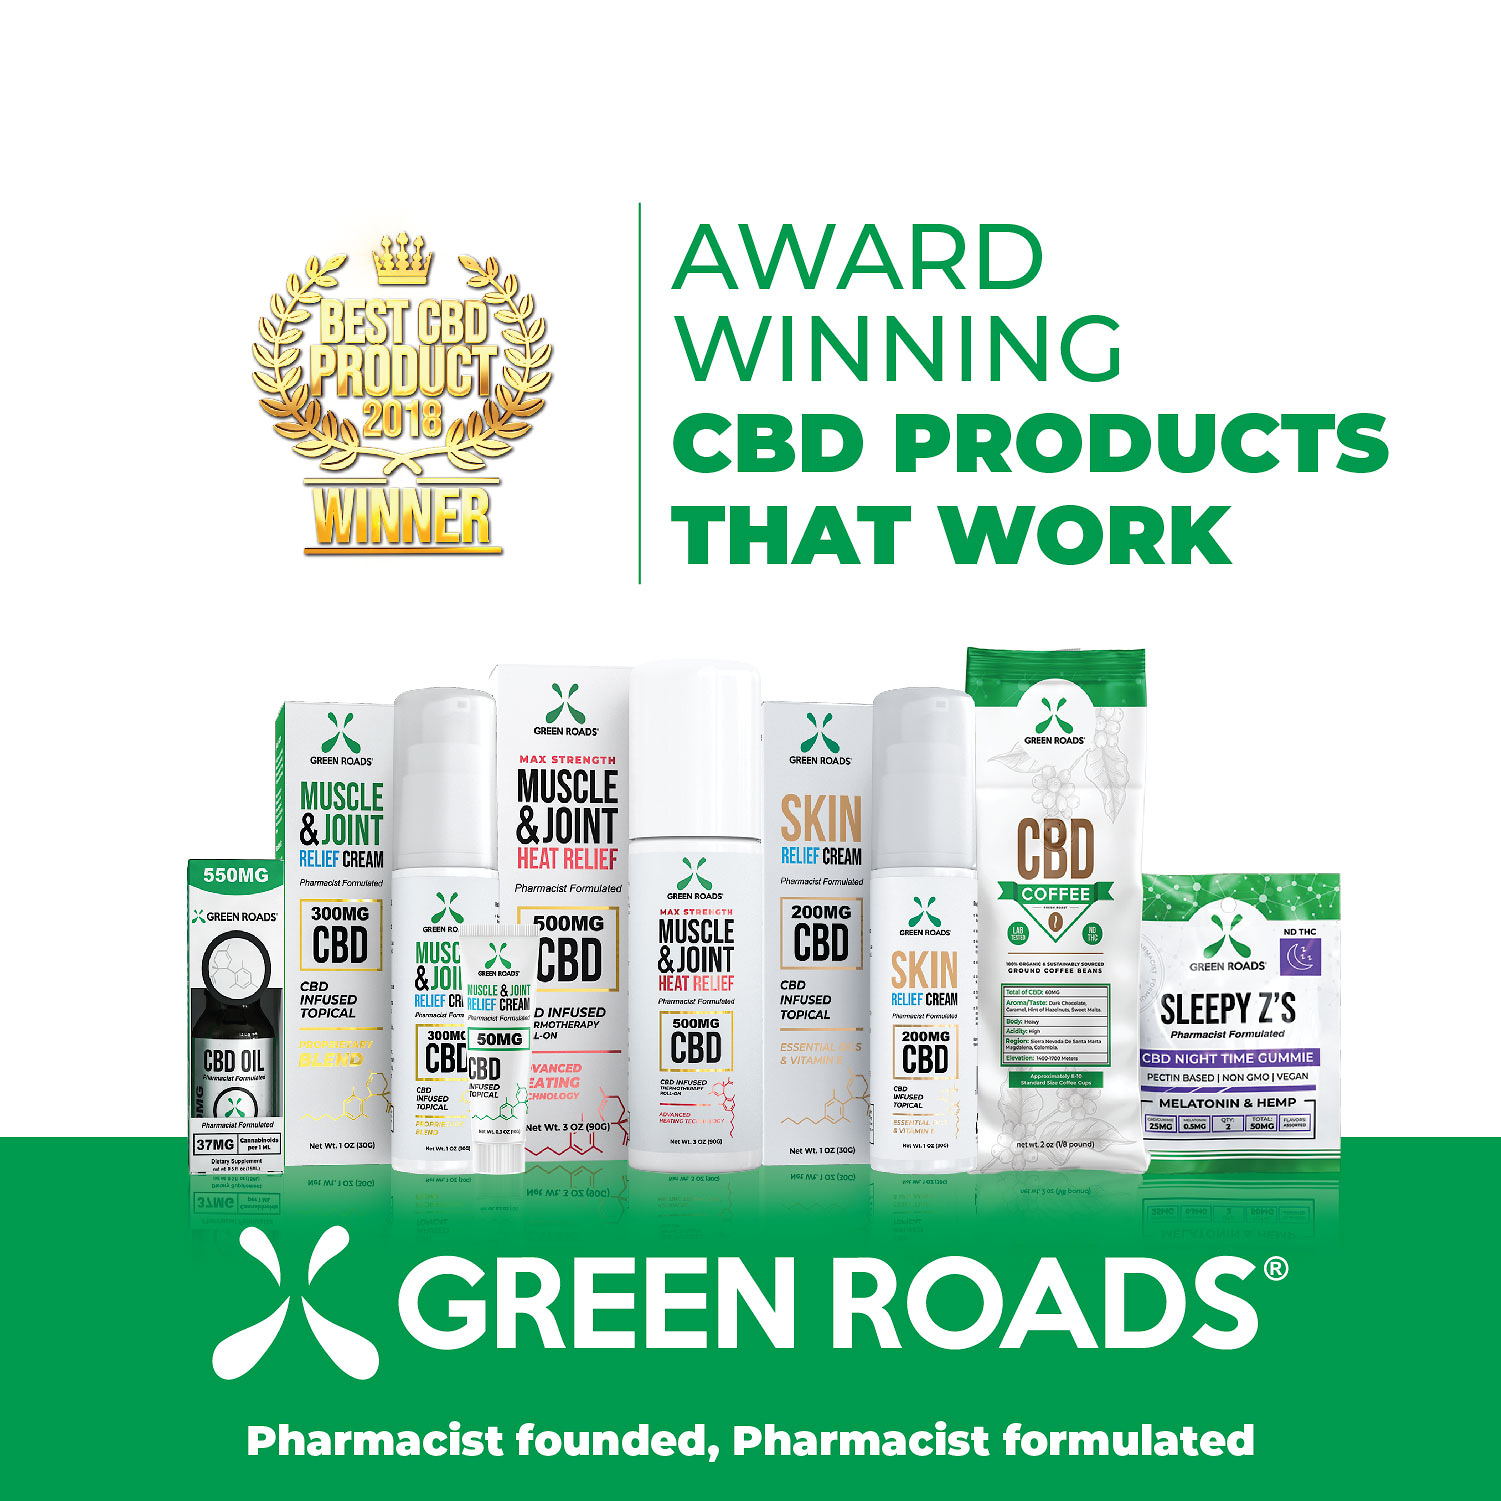 Green Roads is the #1 Privately Held CBD Company in the USA. Come see us to try Green Roads CBD today and find out what all the fuss is about! #GreenRoads #EveryDayBetter #CBD